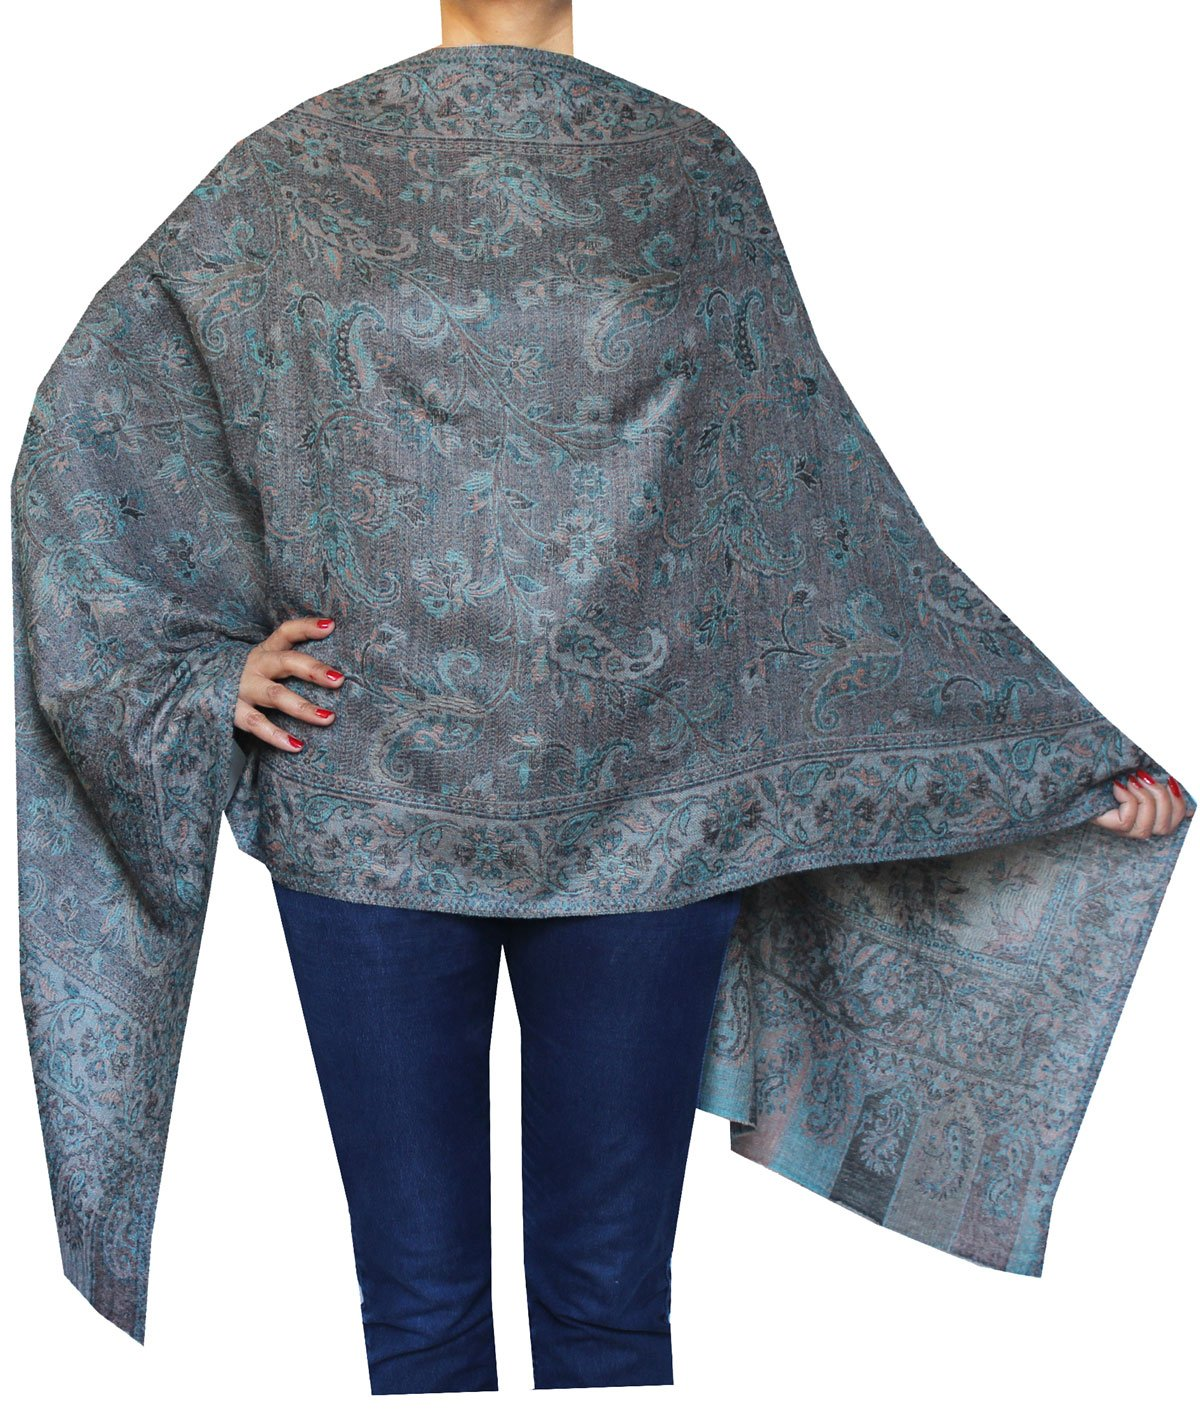 Pure Wool Paisley Shawl Scarves Womens Indian Clothing (80 x 28 inches) Maple Clothing scrf2731816a